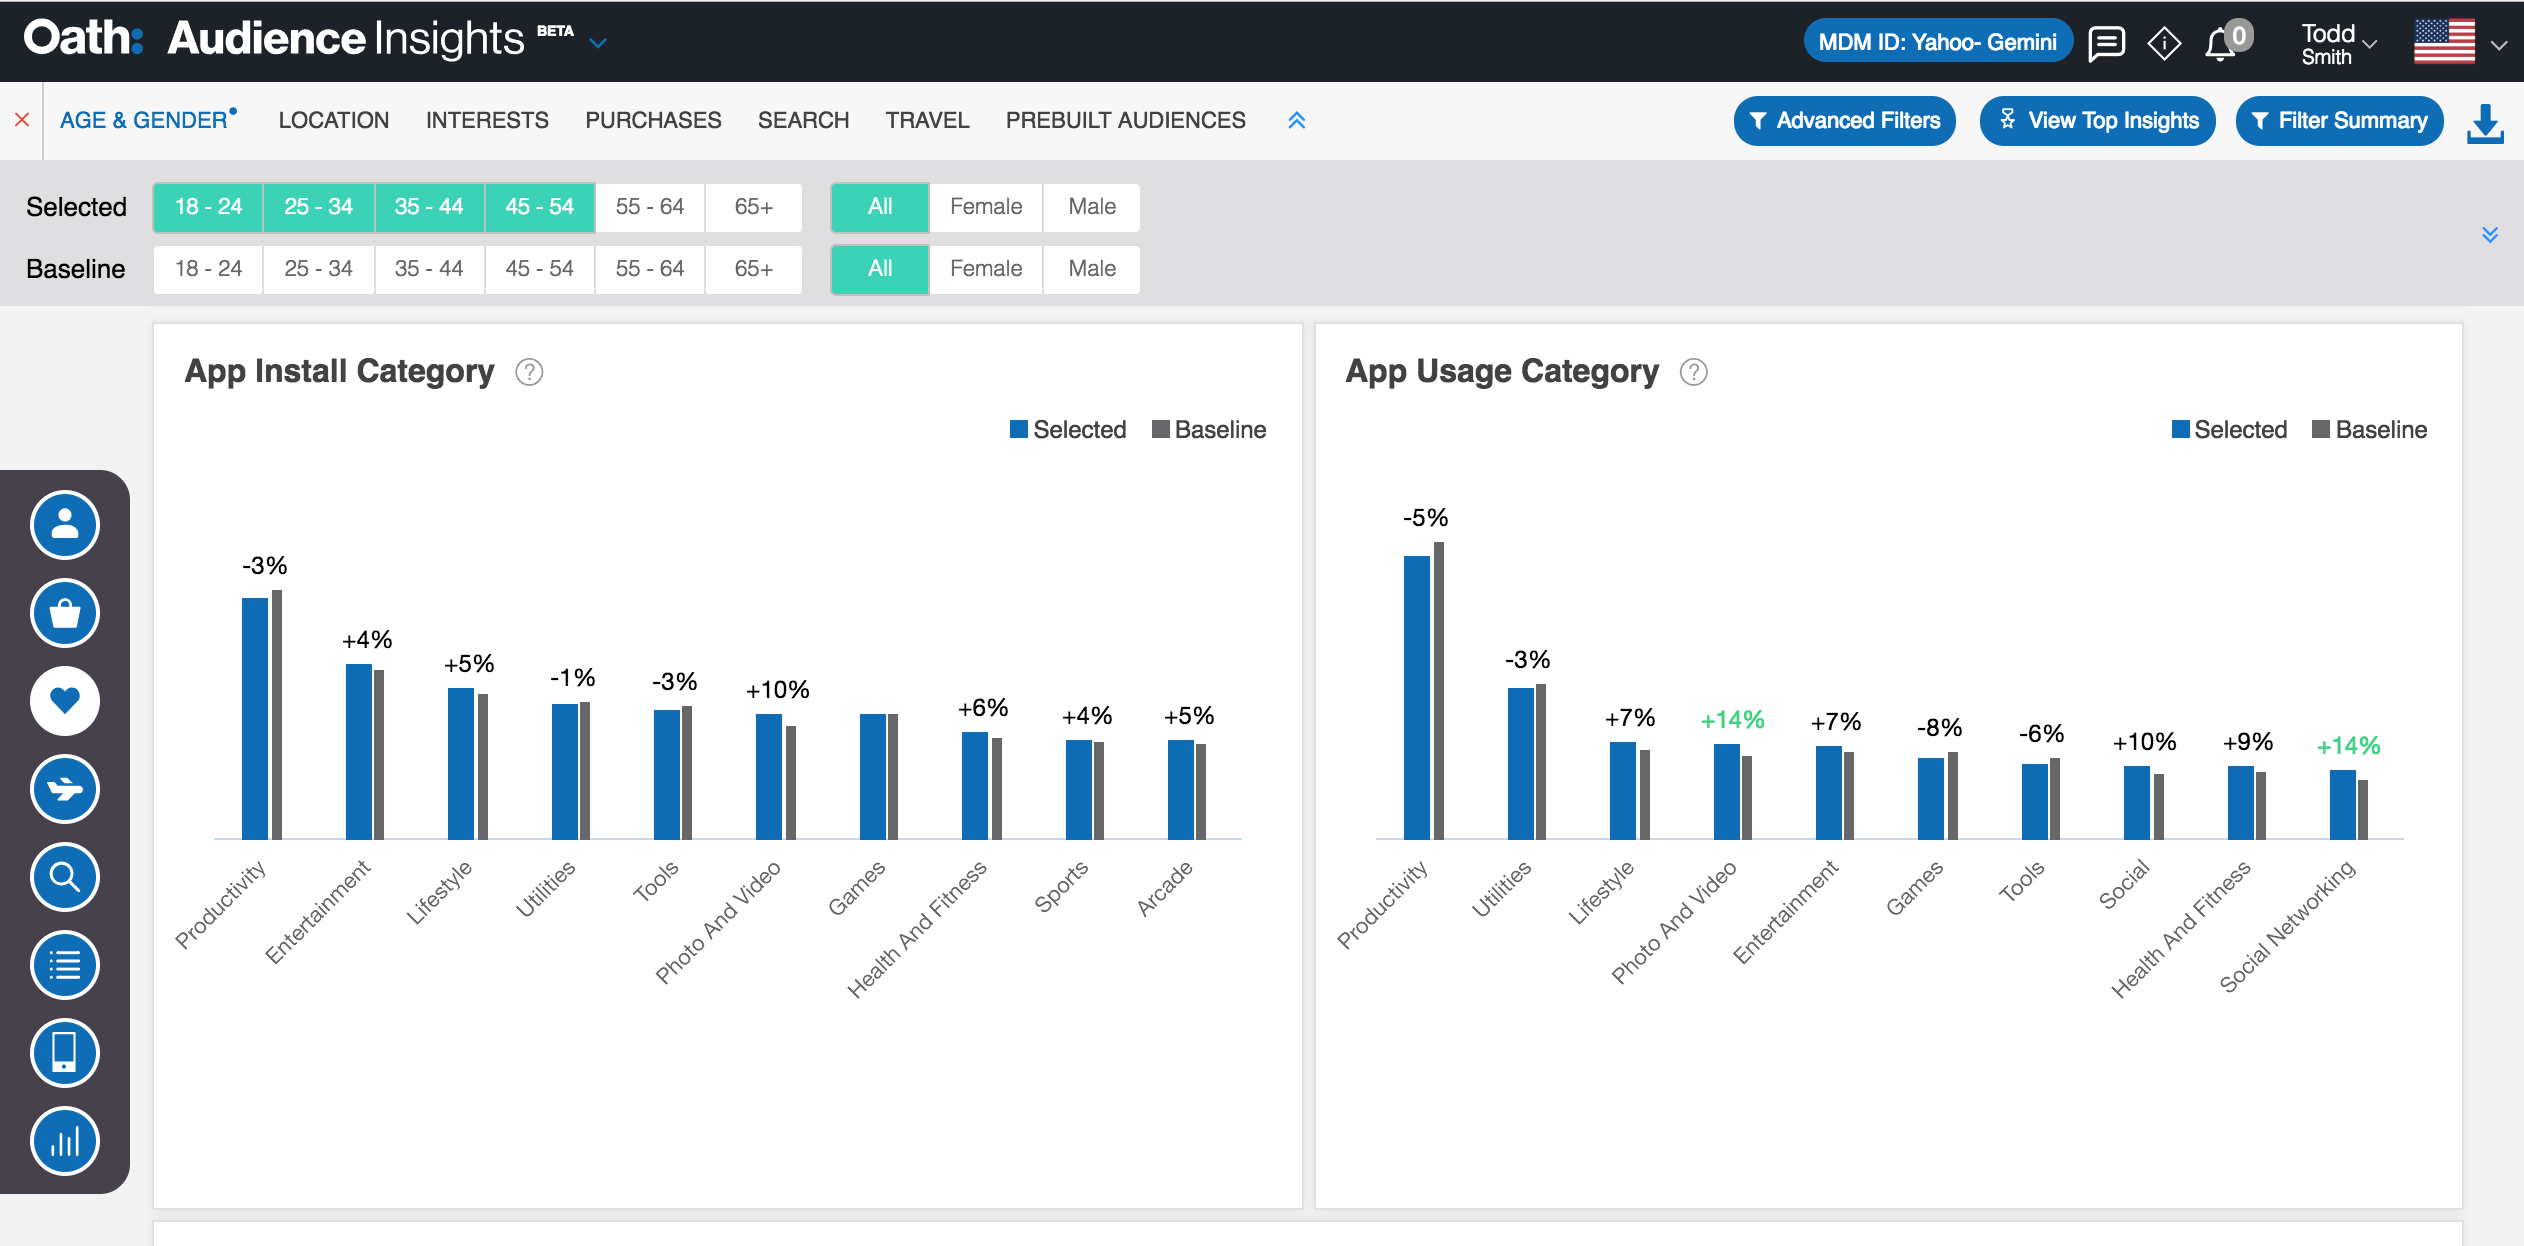 Behavior Reports in the Audience Insights Console